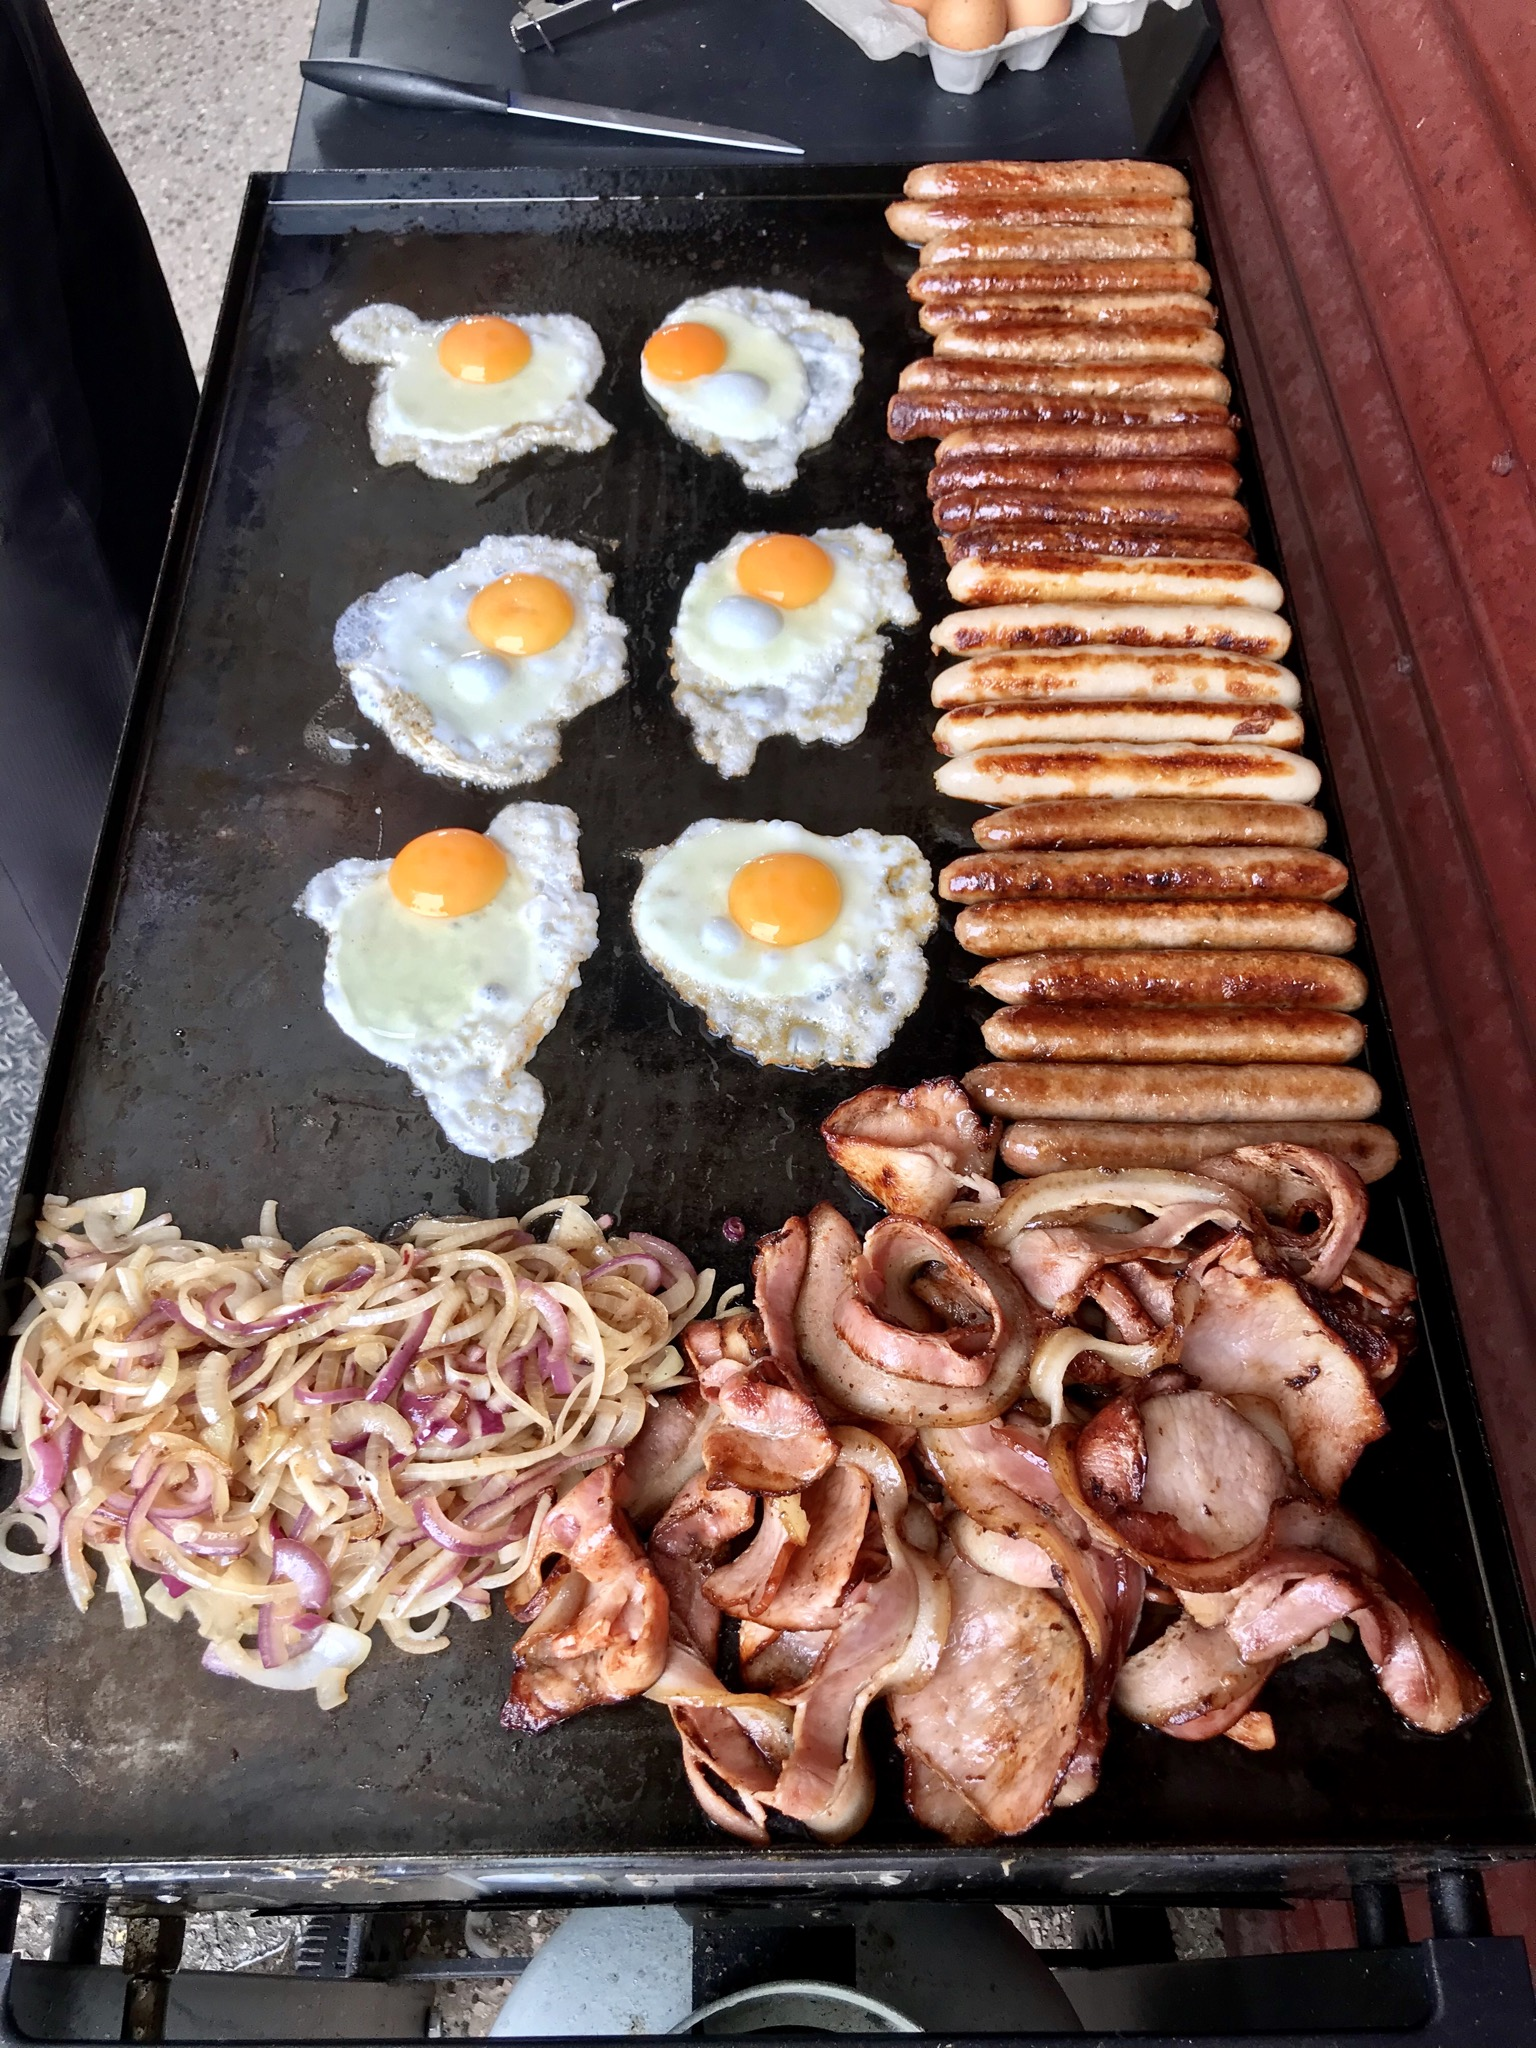 Australian_BBQ'd_breakfast_sausages,_bacon_and_fried_eggs.jpg